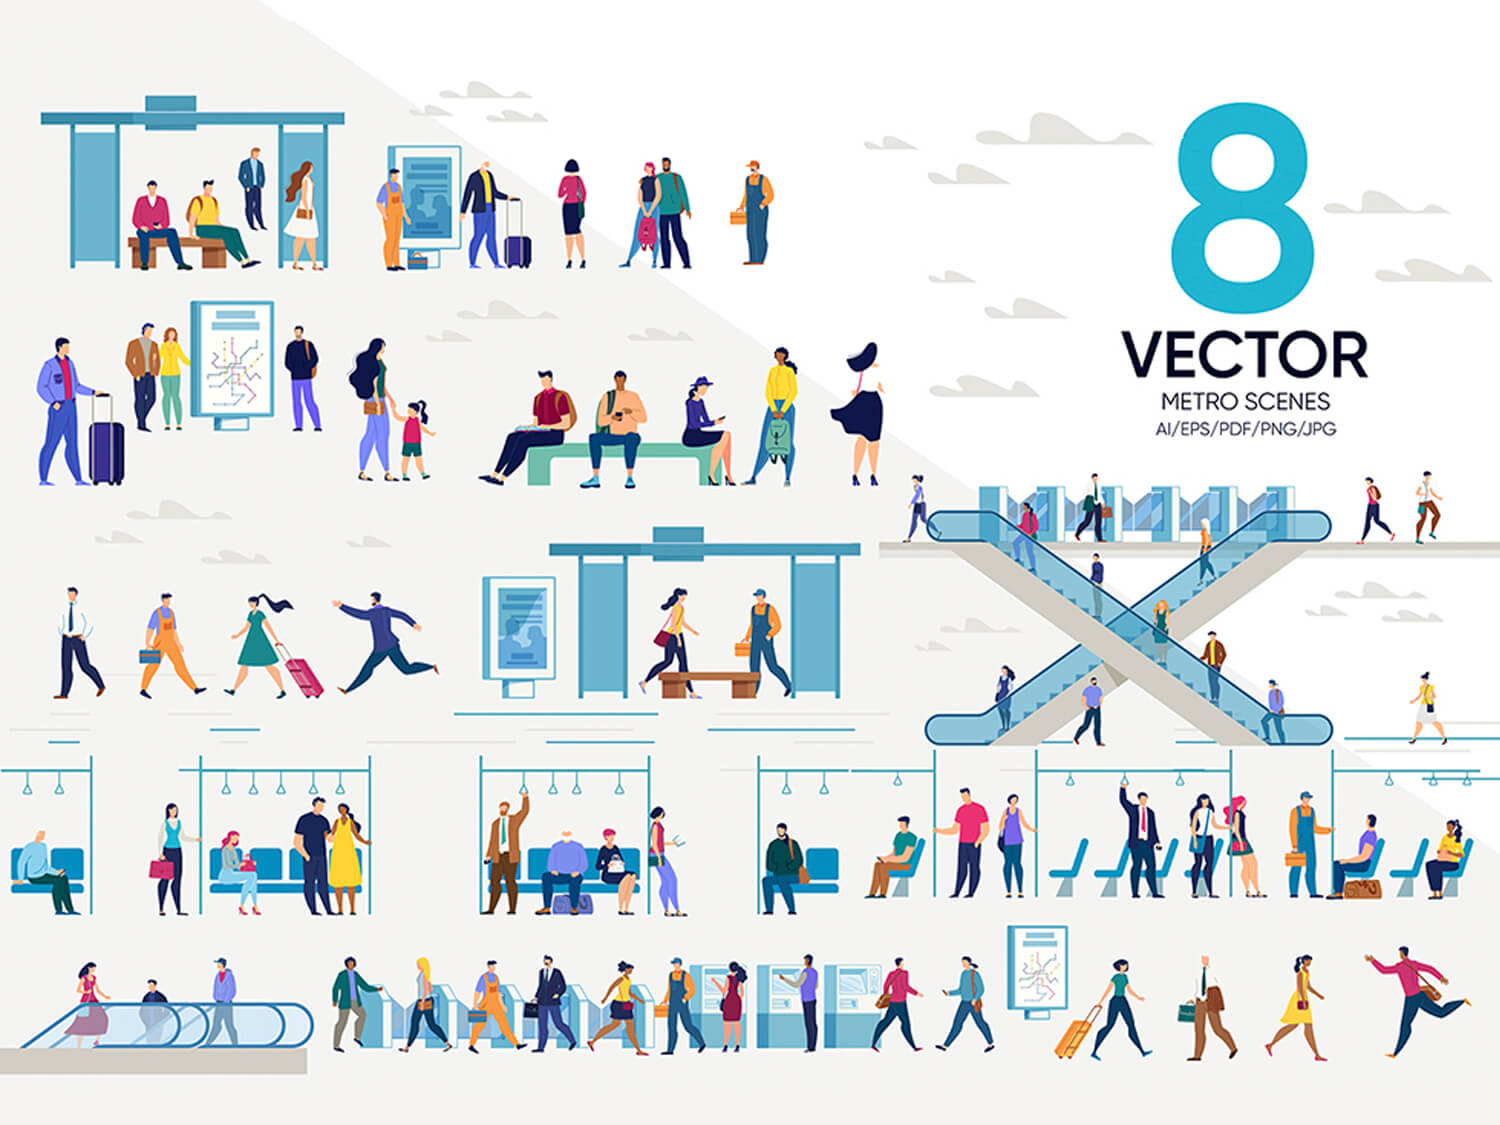 24-in-1 Flaticons Bundle: 8 Metro Vector Scenes